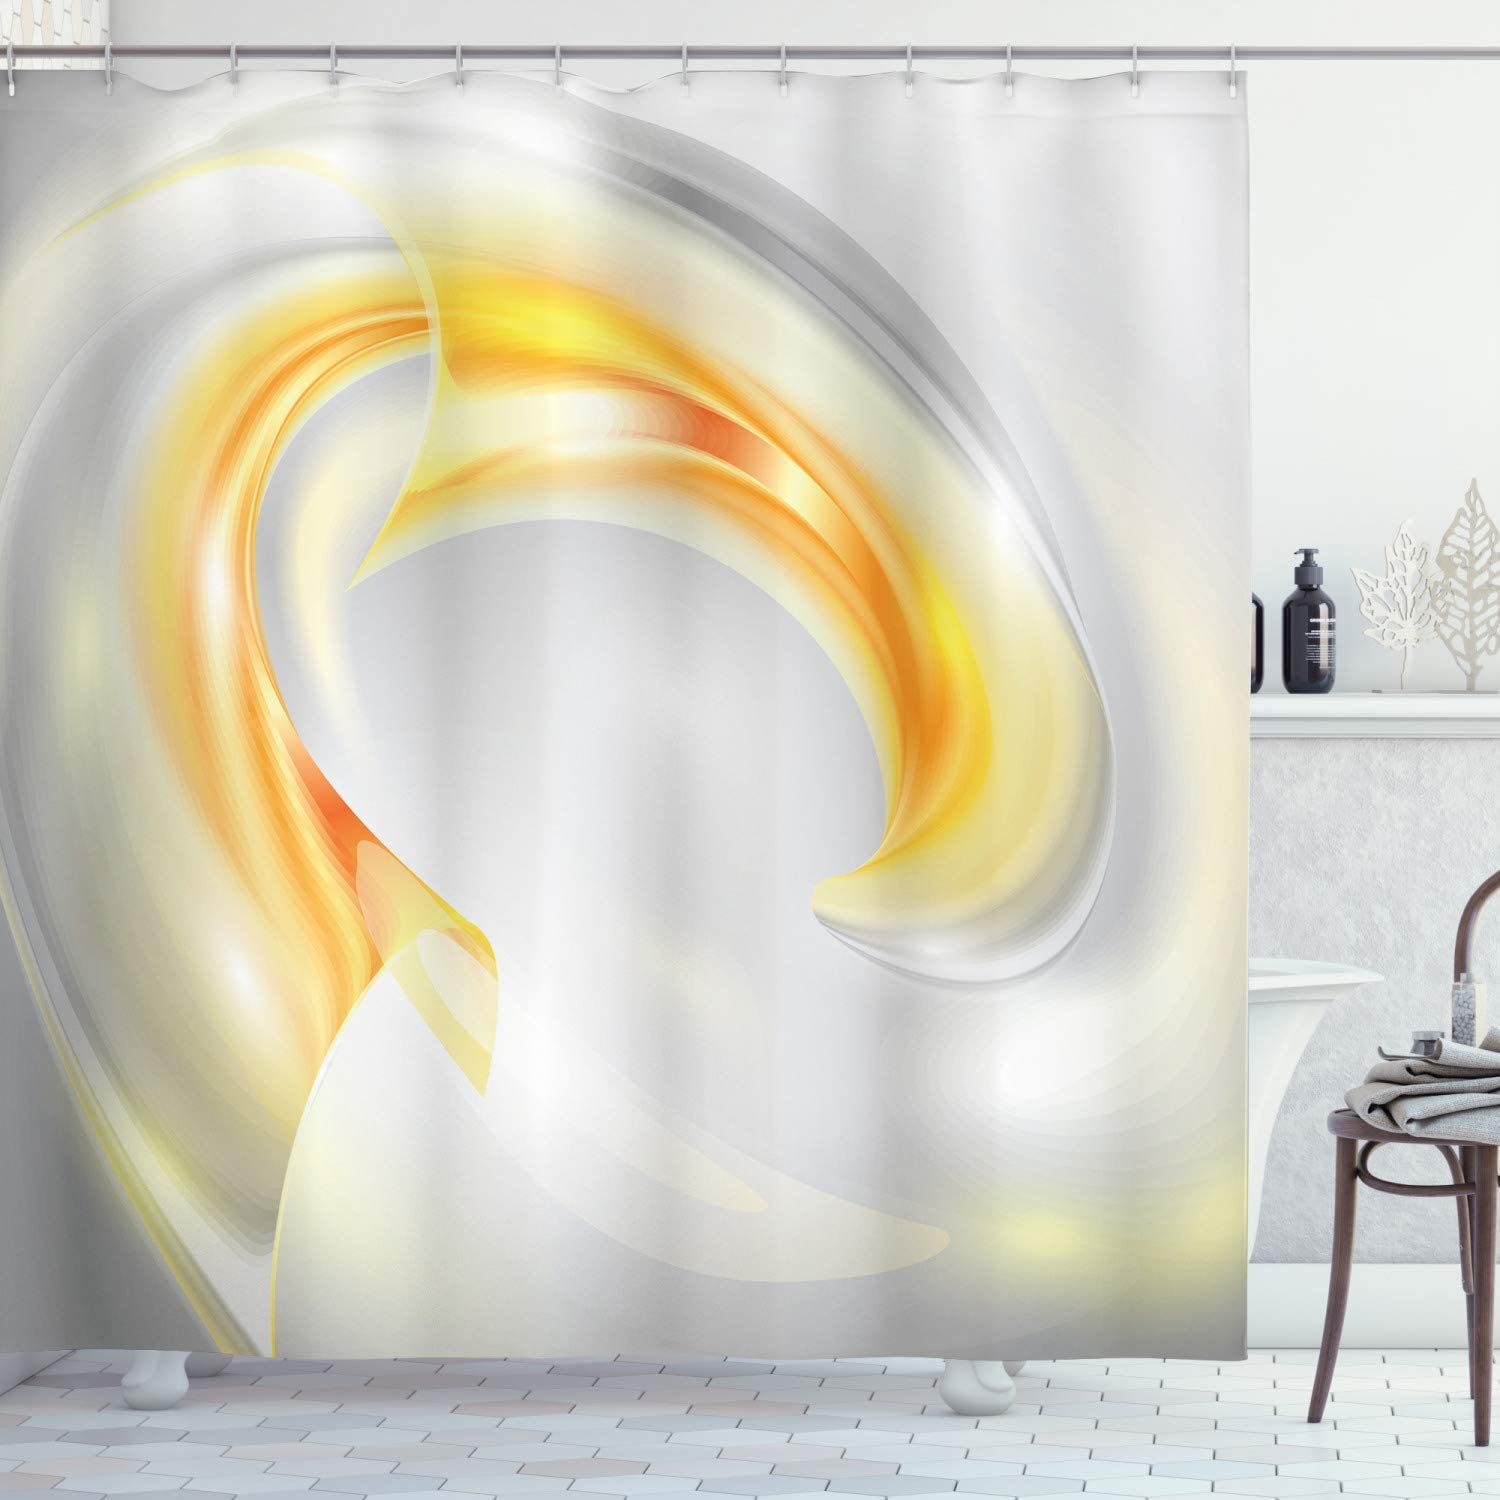 Ambesonne Grey and Yellow Shower Curtain, Abstract Modern Futuristic Wavy Image Ombre Design Art Print, Cloth Fabric Bathroom Decor Set with Hooks, 70